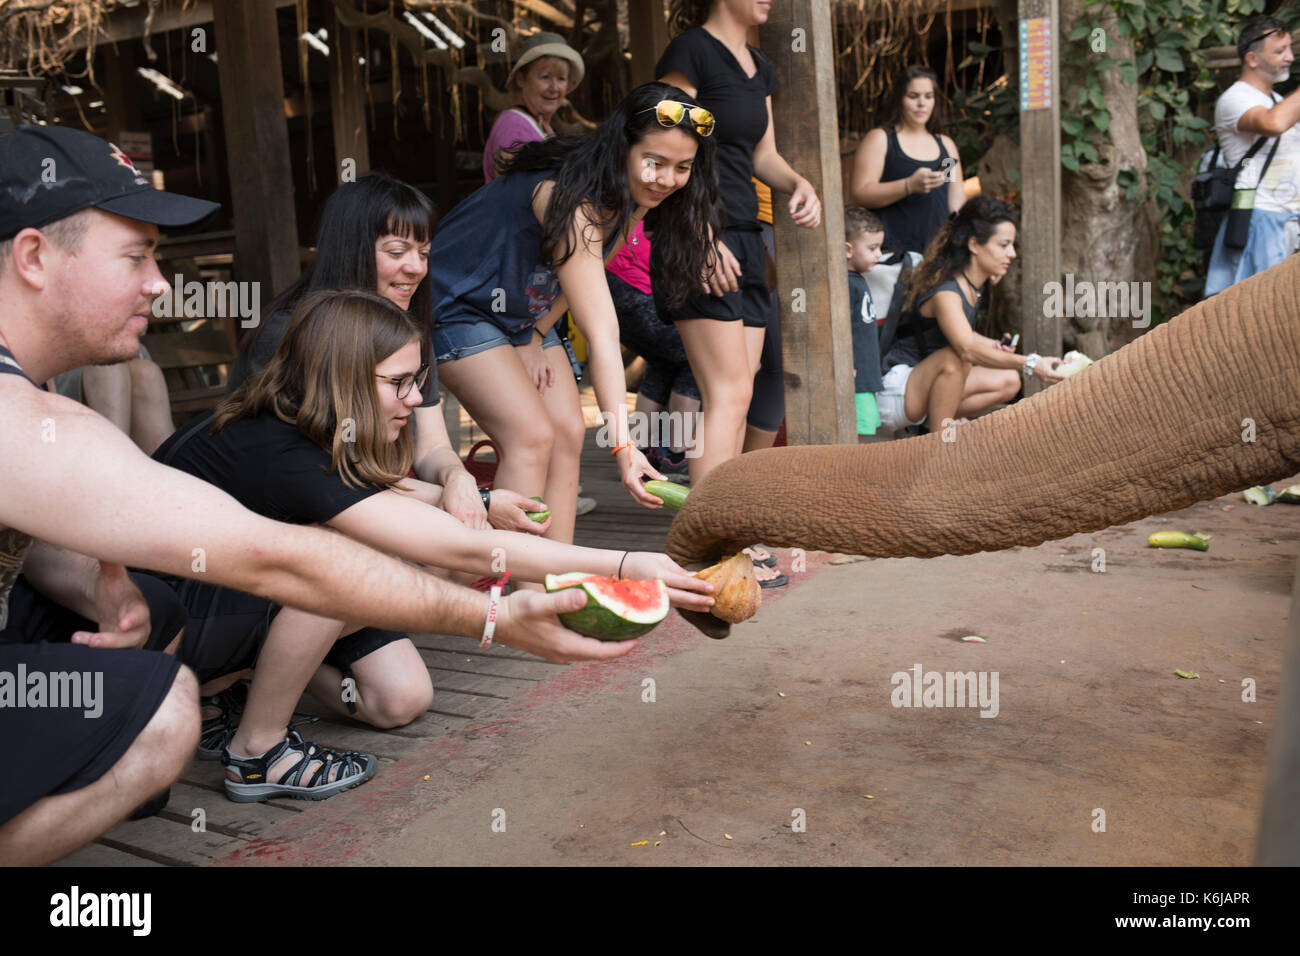 Visitors holding out fruits and squashing for elephants to take, Chiang Mai, Thailand - Stock Image